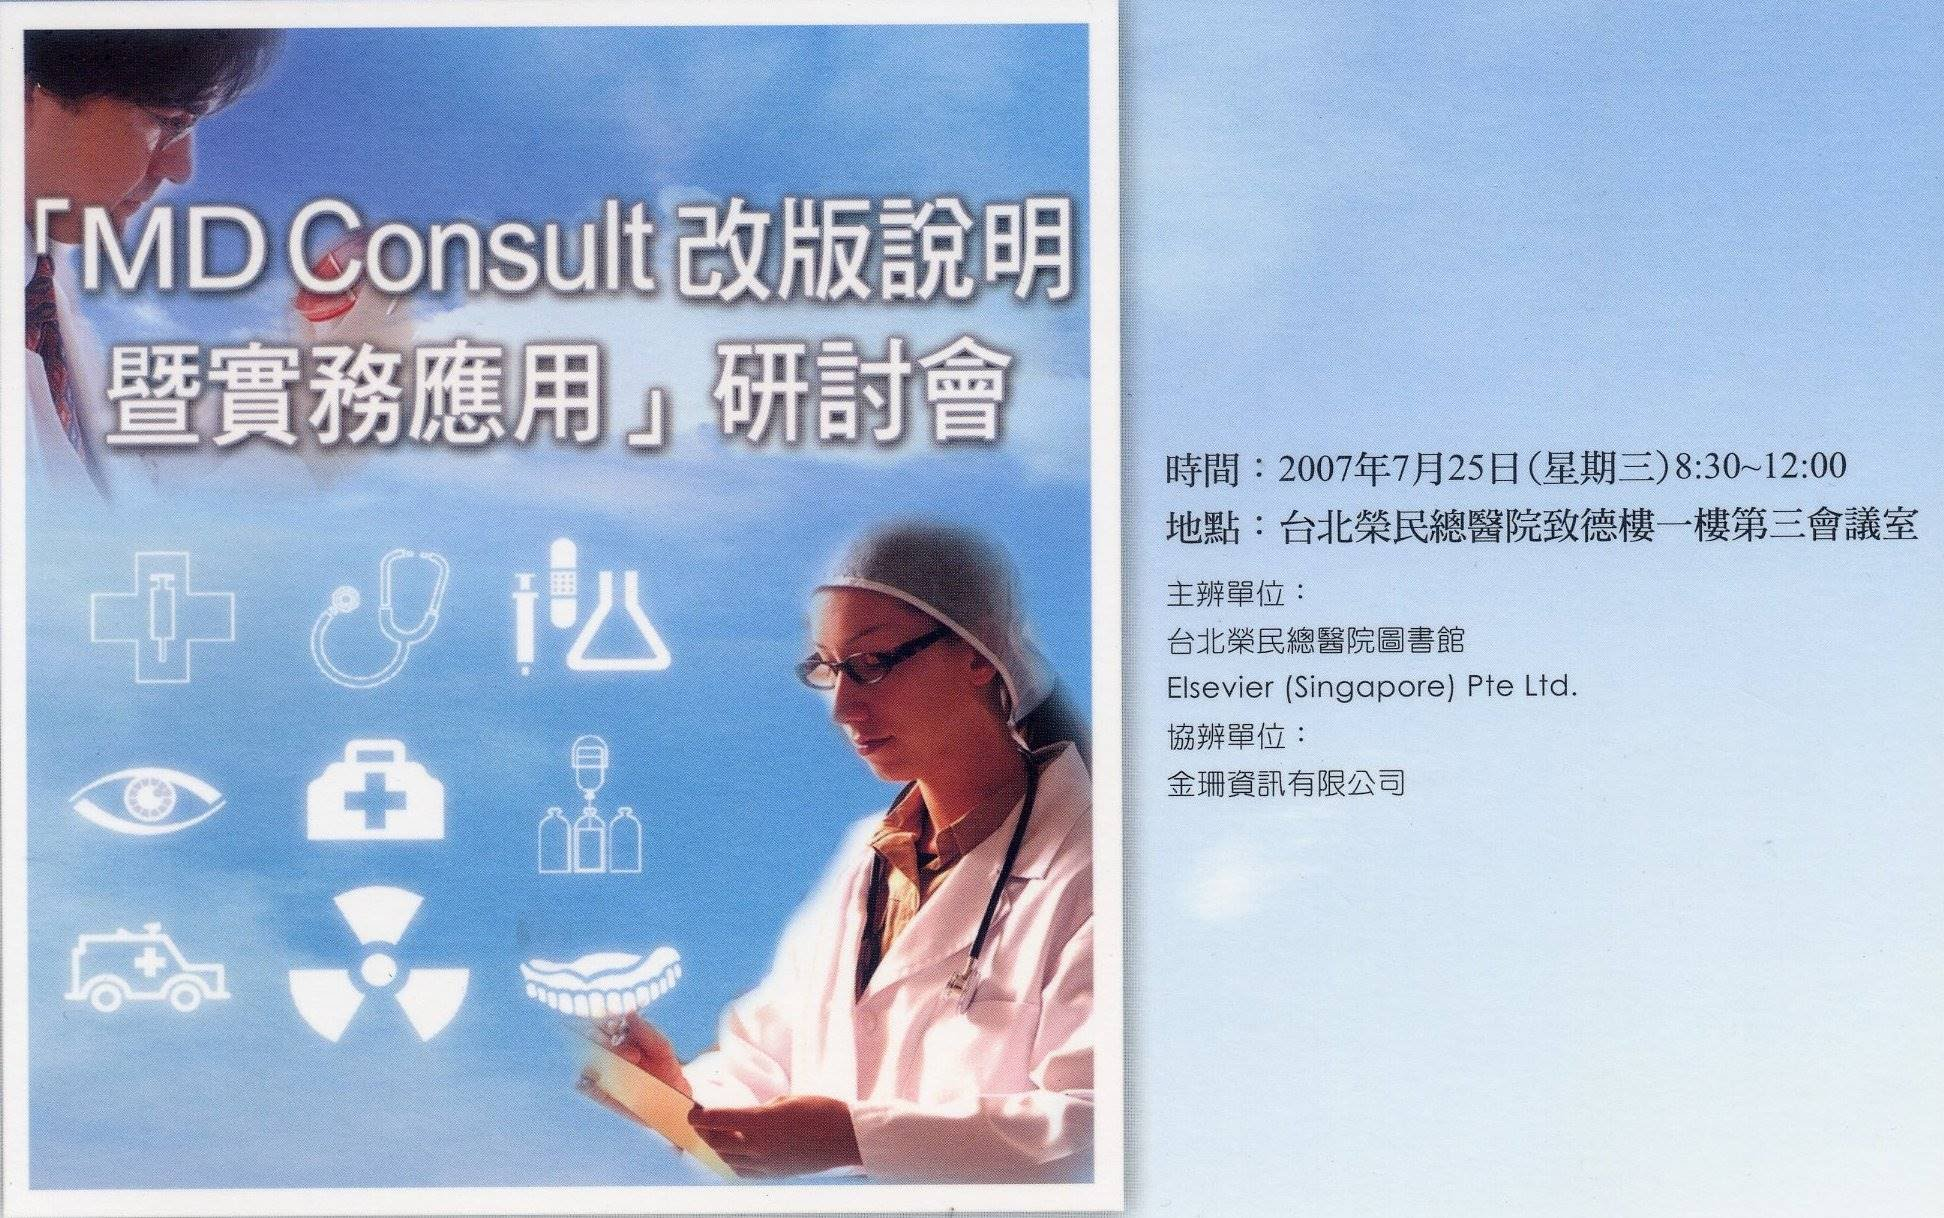 MD Consult Conference